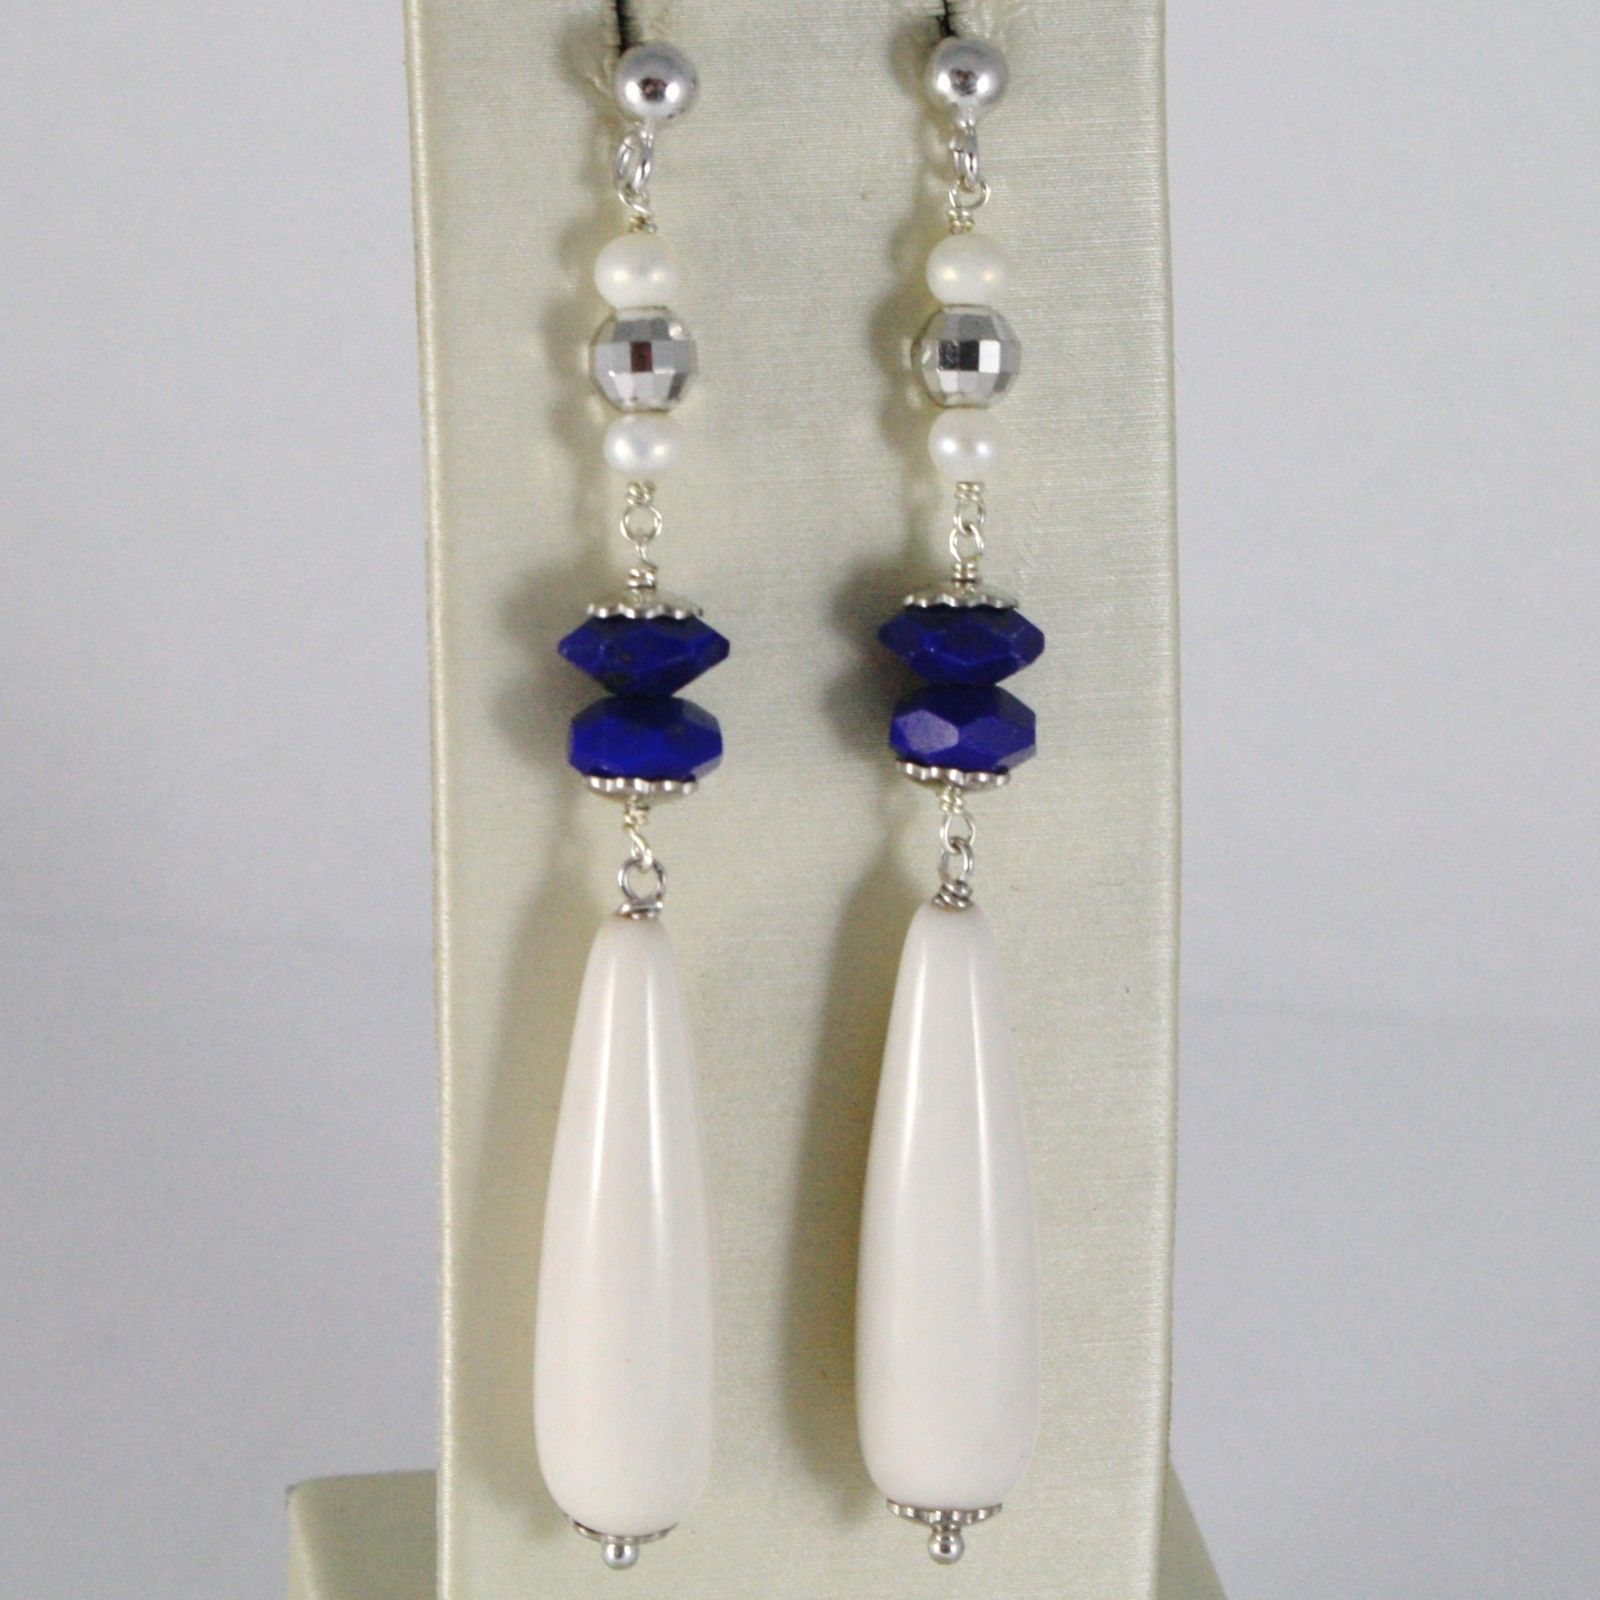 EARRINGS SILVER 925 RHODIUM WITH LAPIS LAZULI BLUE AND DROPS OF RESIN BEIGE